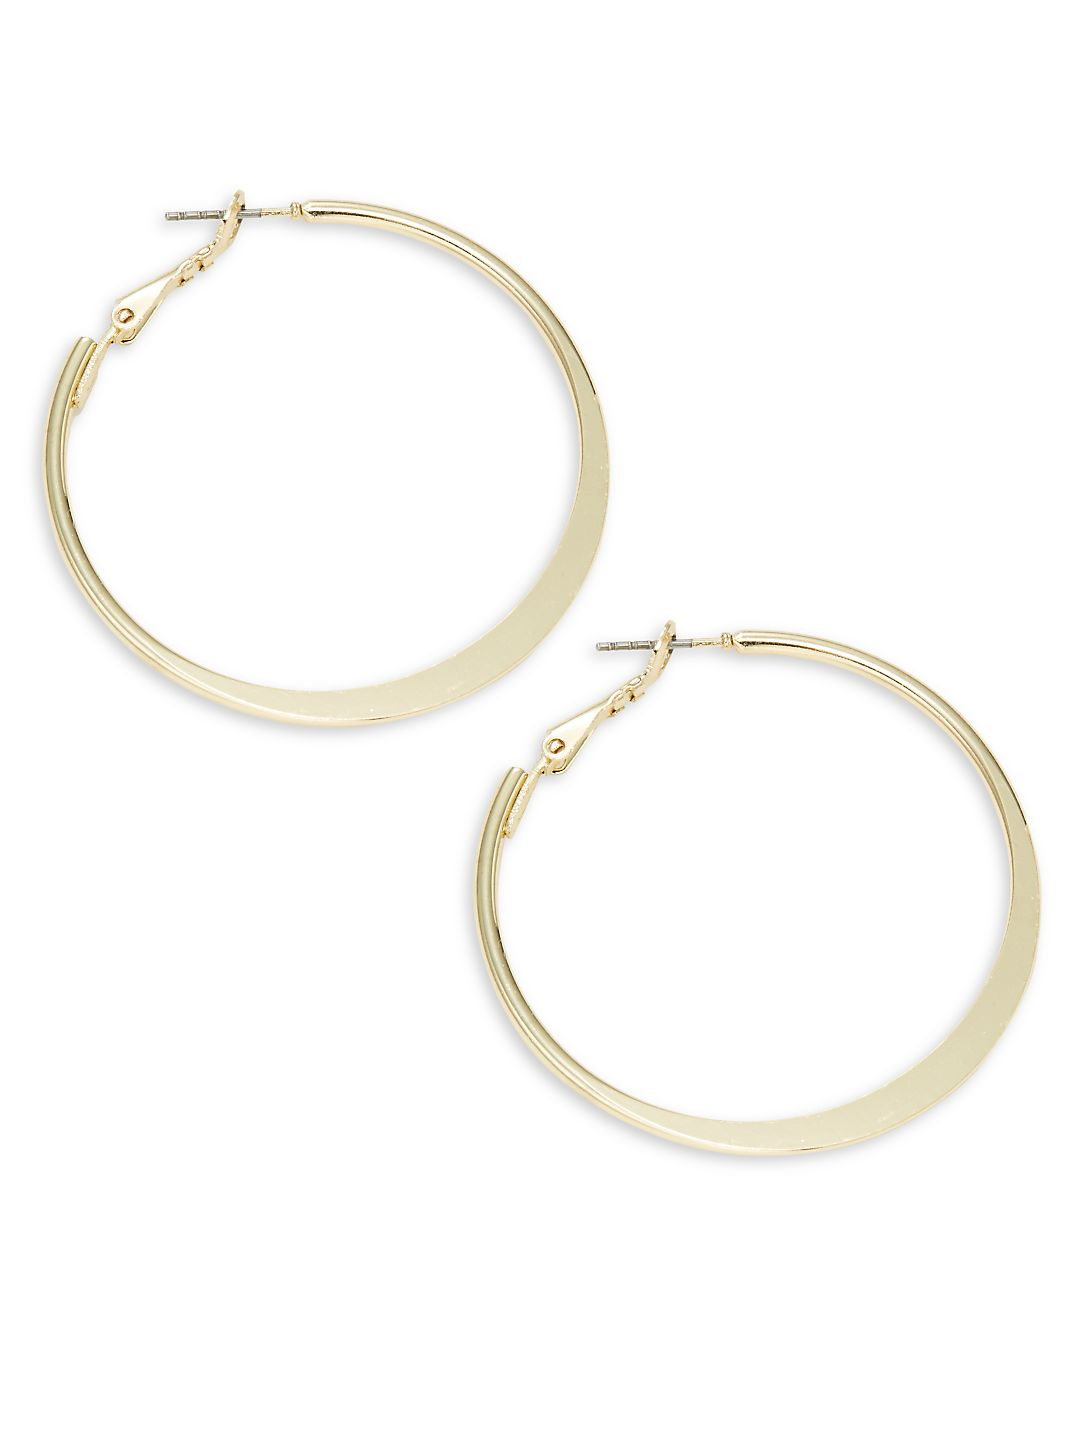 Knife-Edged Hoop Earrings